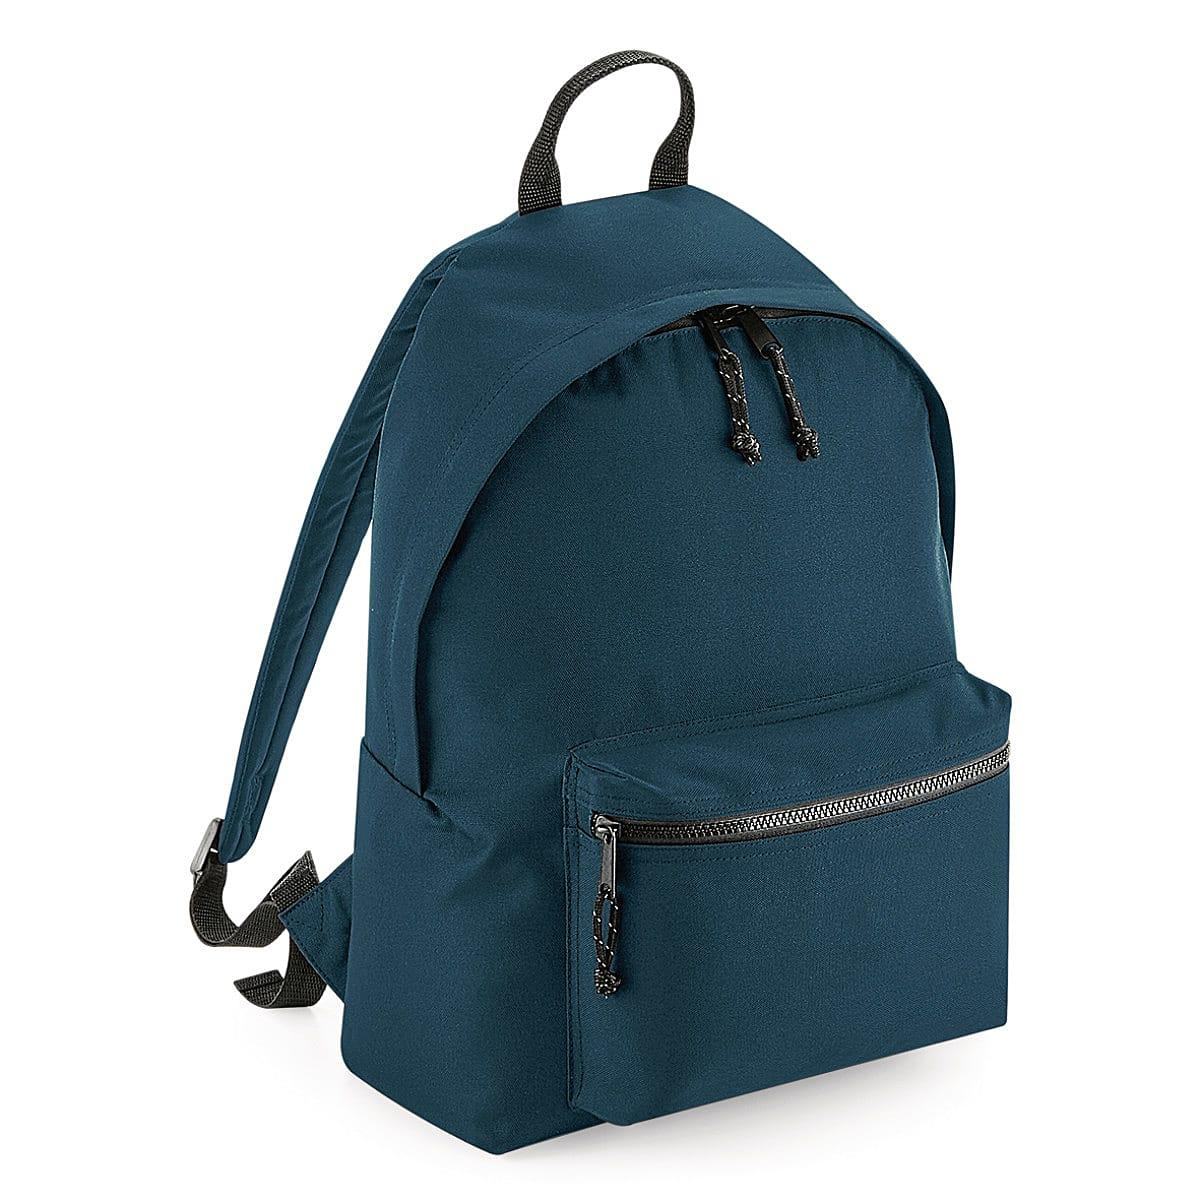 Bagbase Recycled Backpack in Petrol (Product Code: BG285)